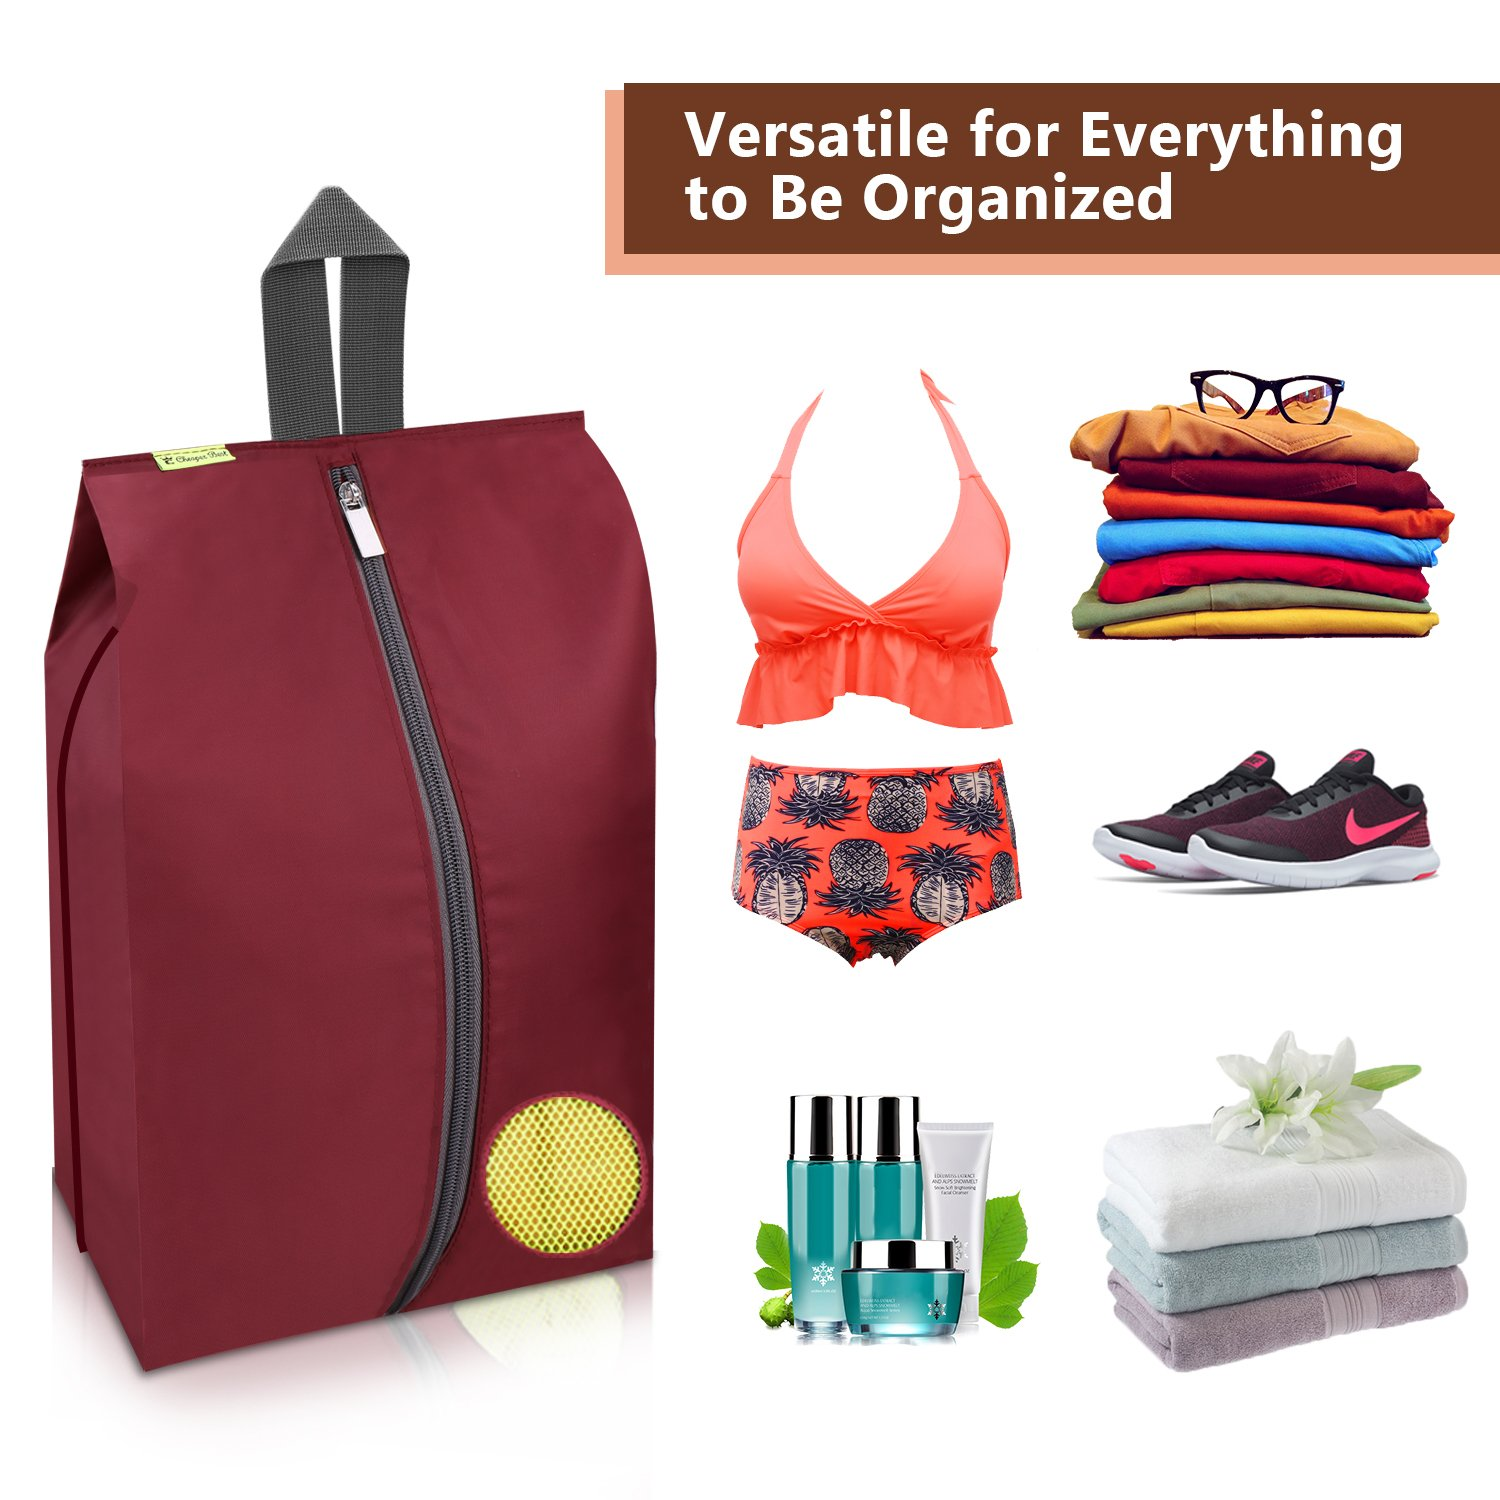 Travel Shoes Bags 4 Pieces Pack – Cheaper Best - Waterproof Durable Versatile Organizers Sleeves Tough Zipper with Fluorescent Mesh Reinforced See-Through Window (Burgundy) by Cheaper Best (Image #6)